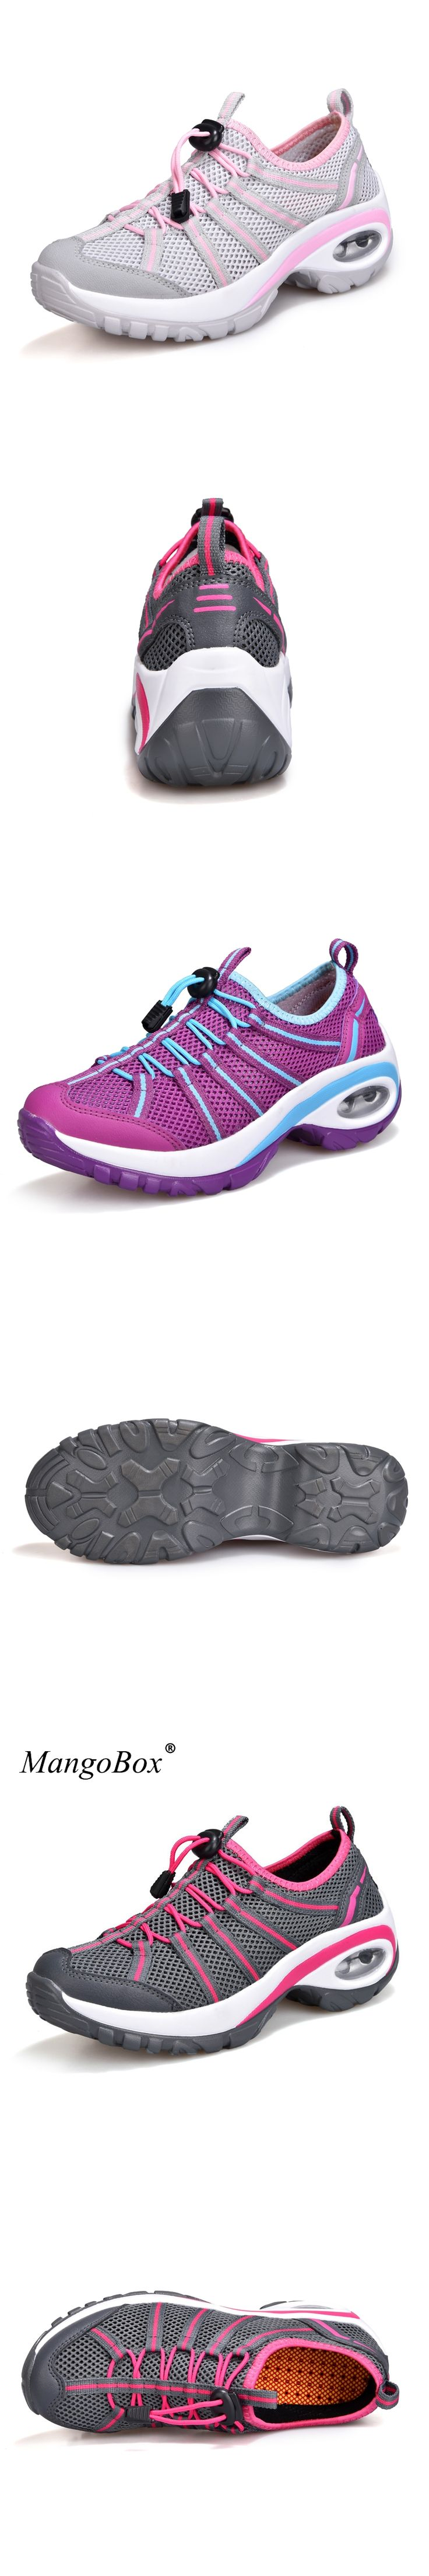 Hot 2017 Women Athletic Shoes Spring/Summer Sport Sneakers Women Luxury Running Shoes Light Training Sneakers Cheap Runners